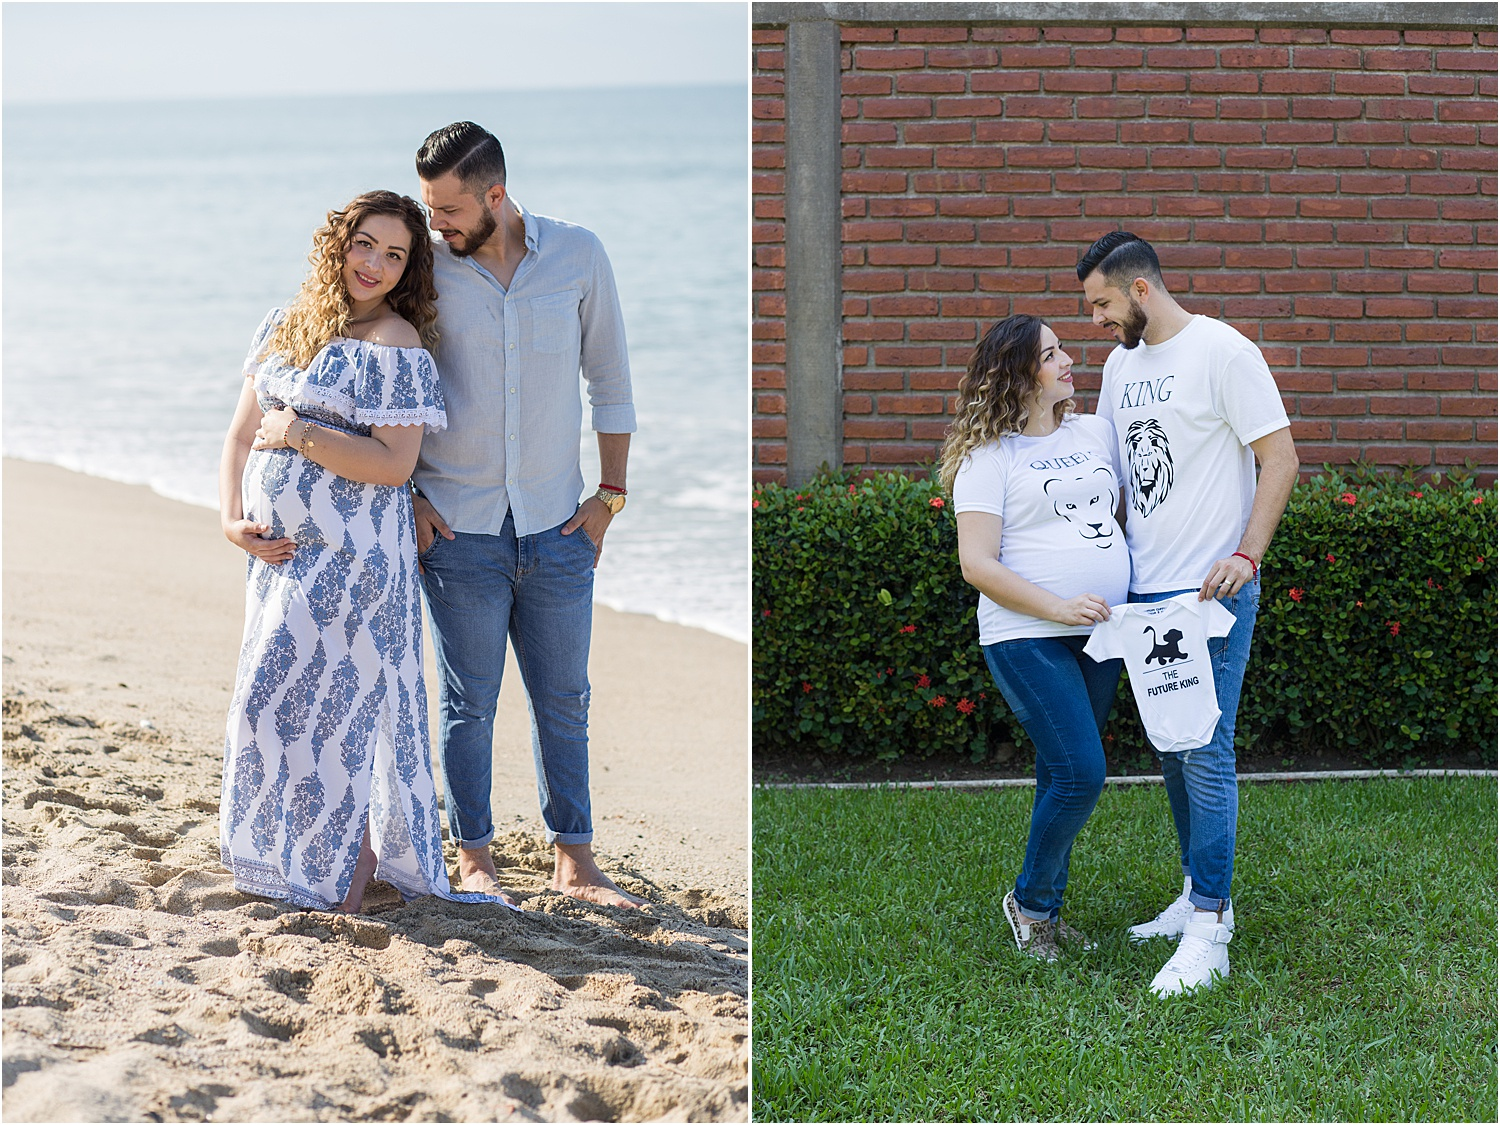 How to Choose the Right Location for Your Photo Session